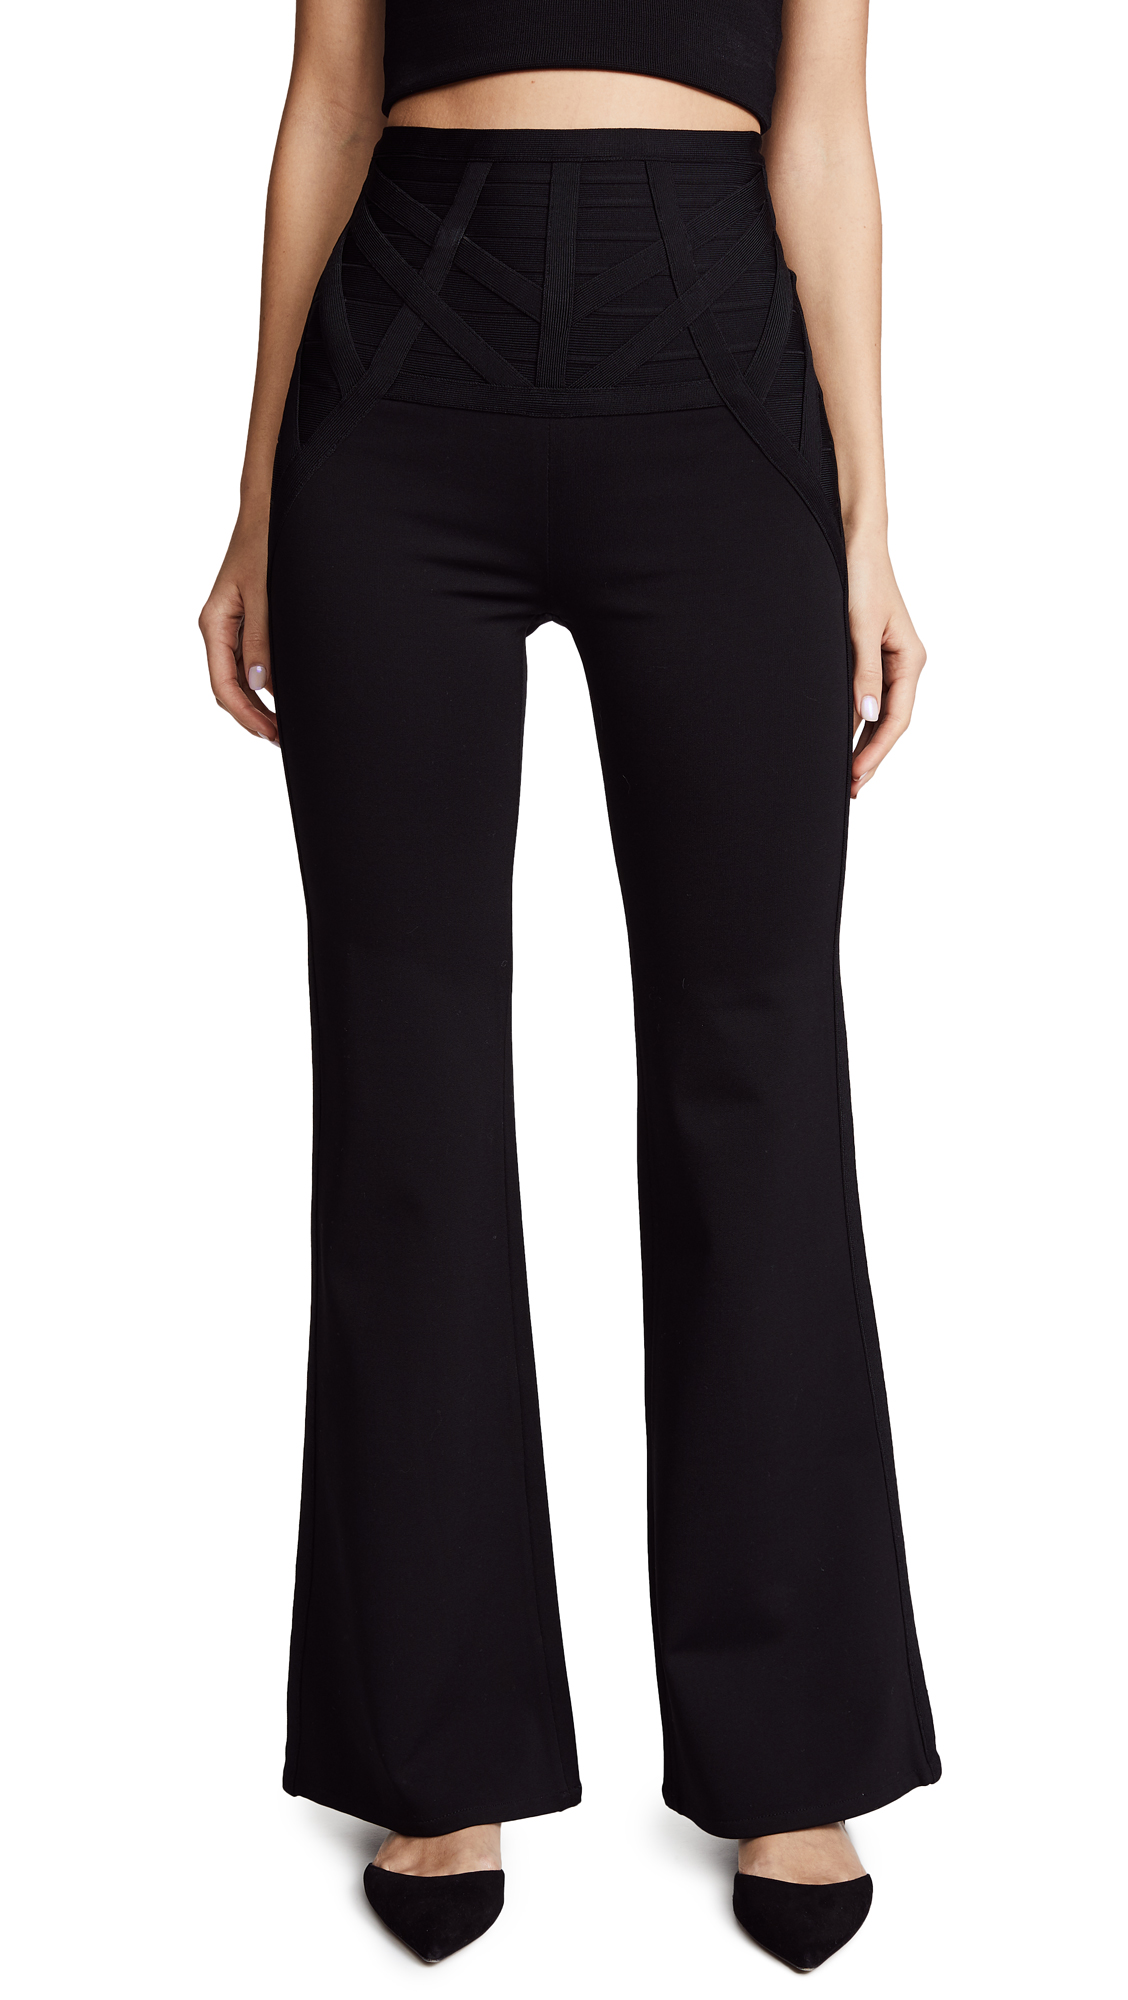 Herve Leger Flared Pants - Black